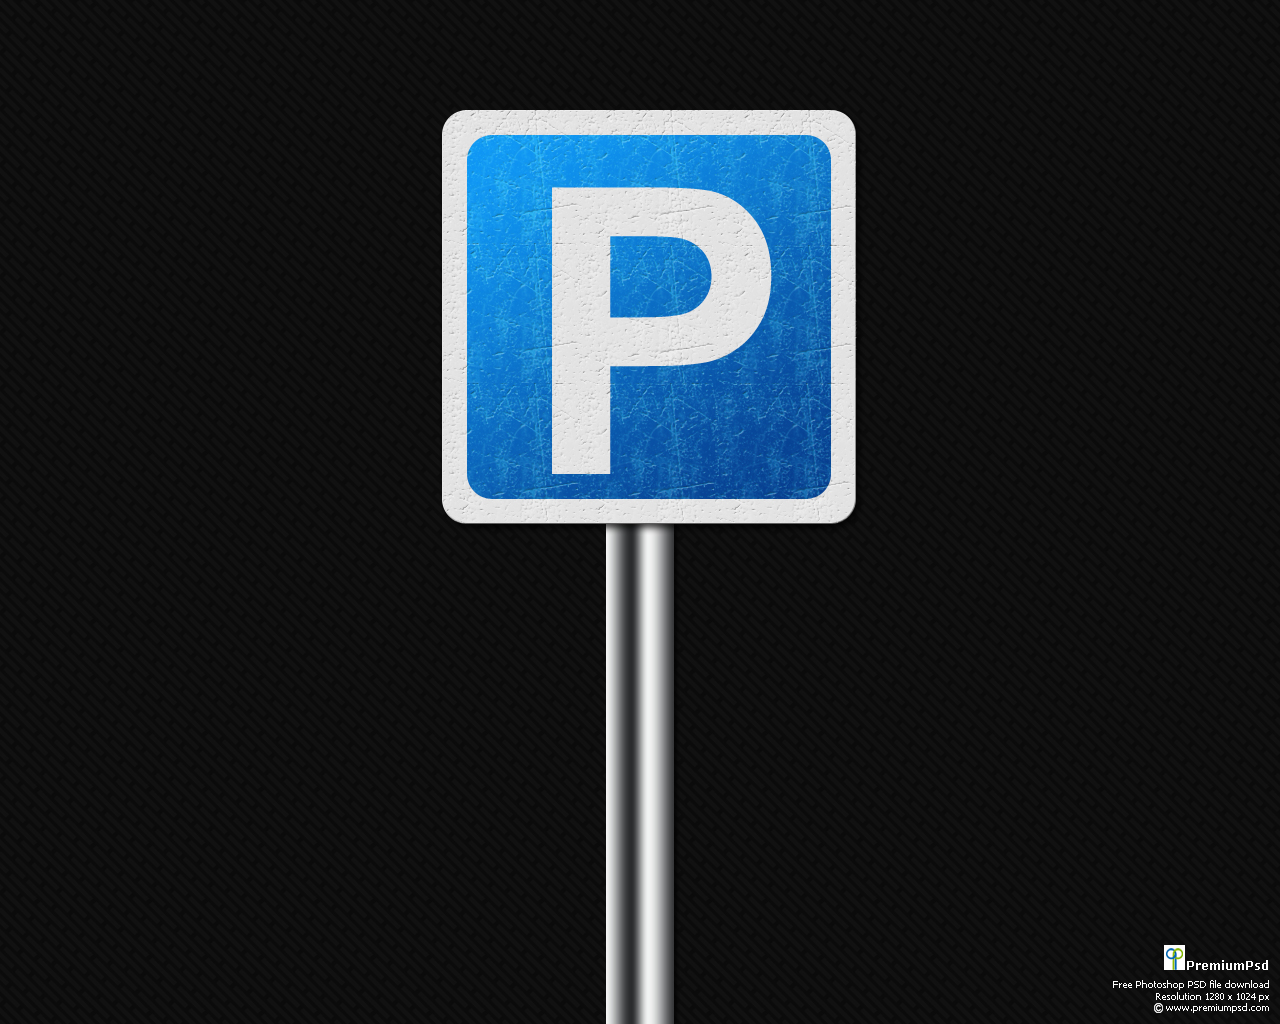 Visiting Cards Backgrounds Blue Parking Sign Gn Psd Premium 543280 Wallpaper wallpaper